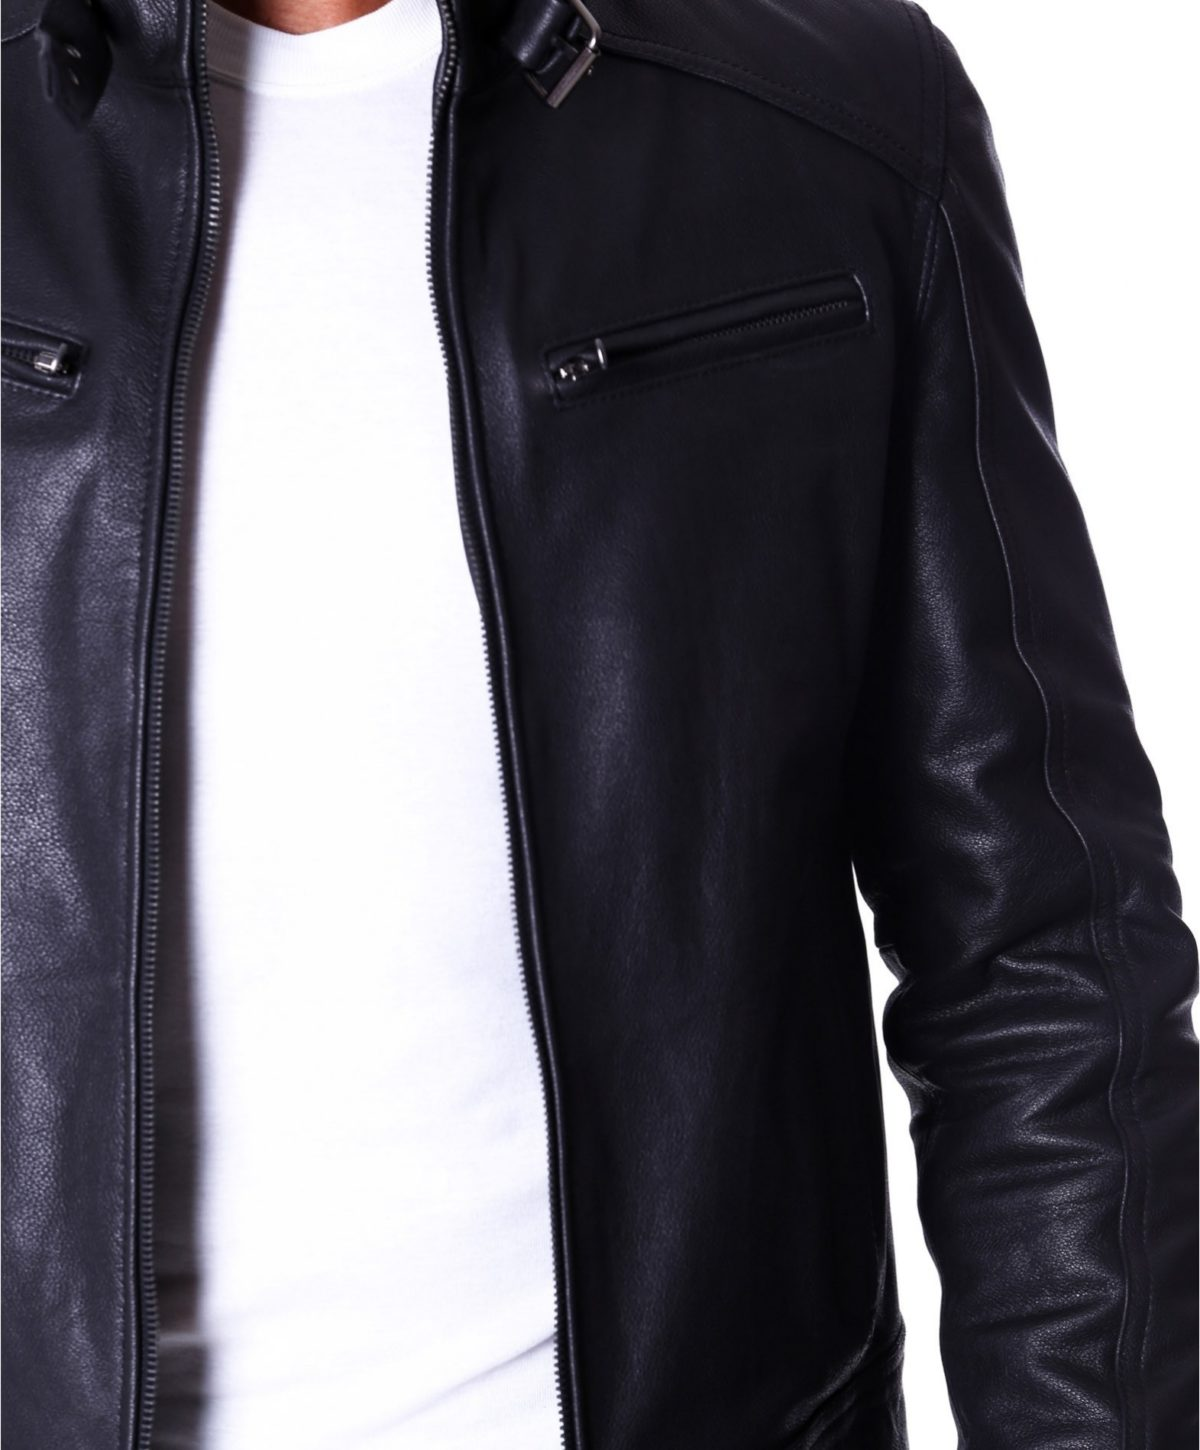 men-s-leather-jacket-genuine-lamb-leather-biker-buckle-collar-black-color-max (1)